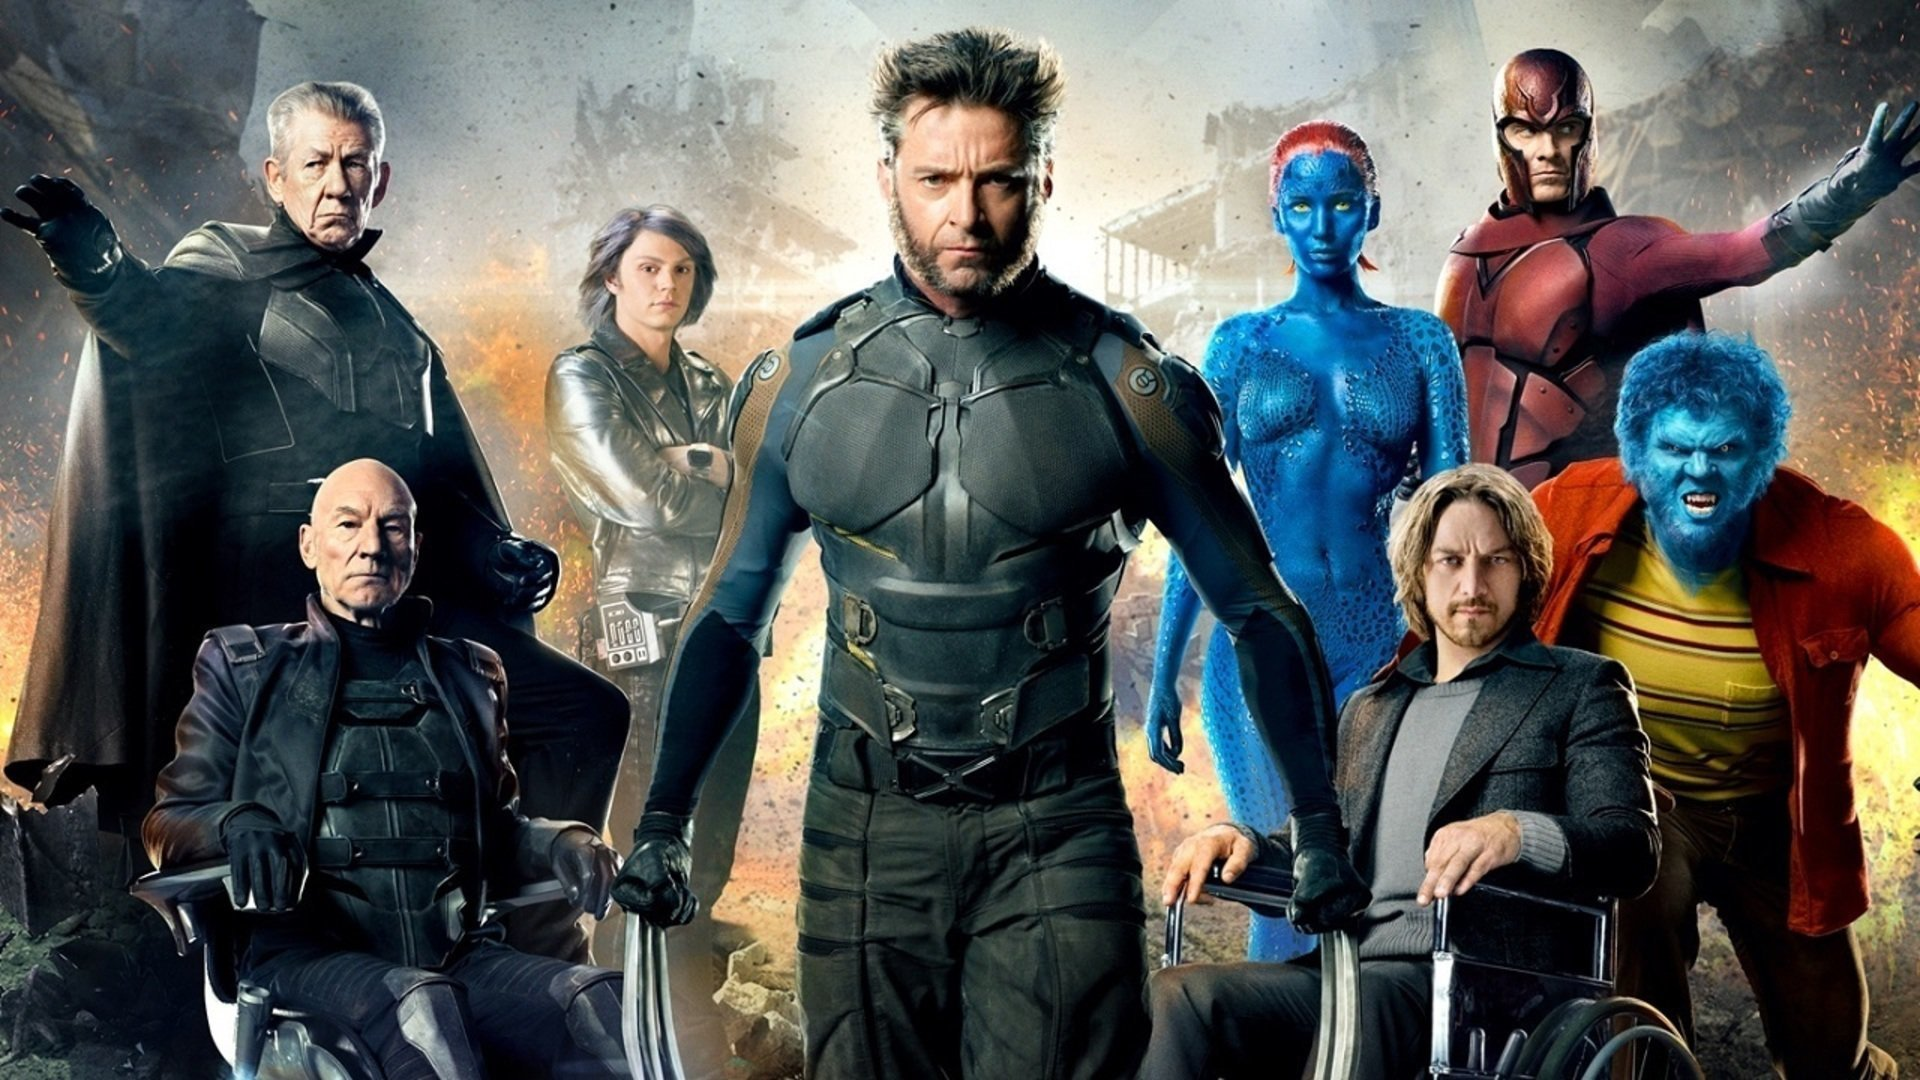 Free Download X Men Days Of Future Past Wallpaper Id 8450 1080p For Pc